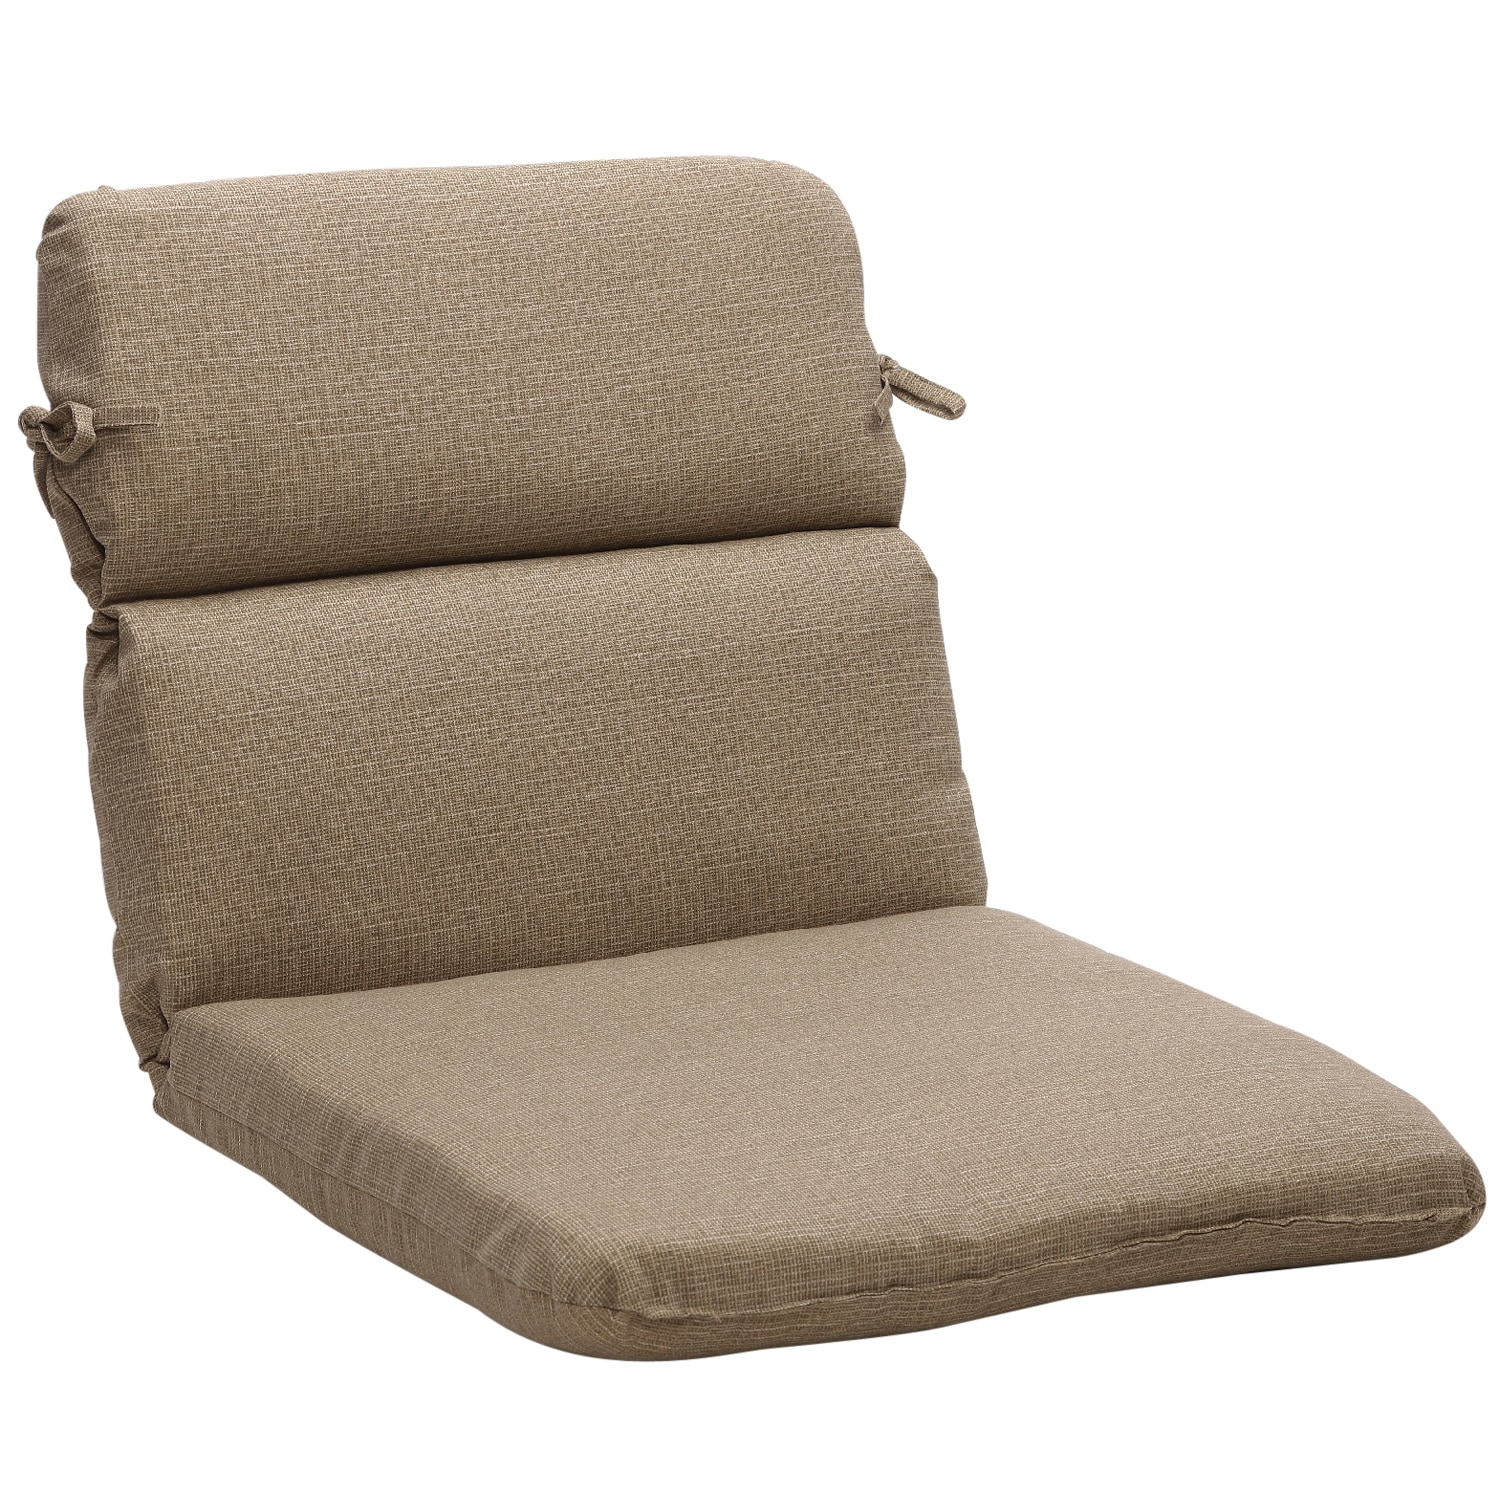 Rounded Solid Taupe Textured Outdoor Chair Cushion Patio